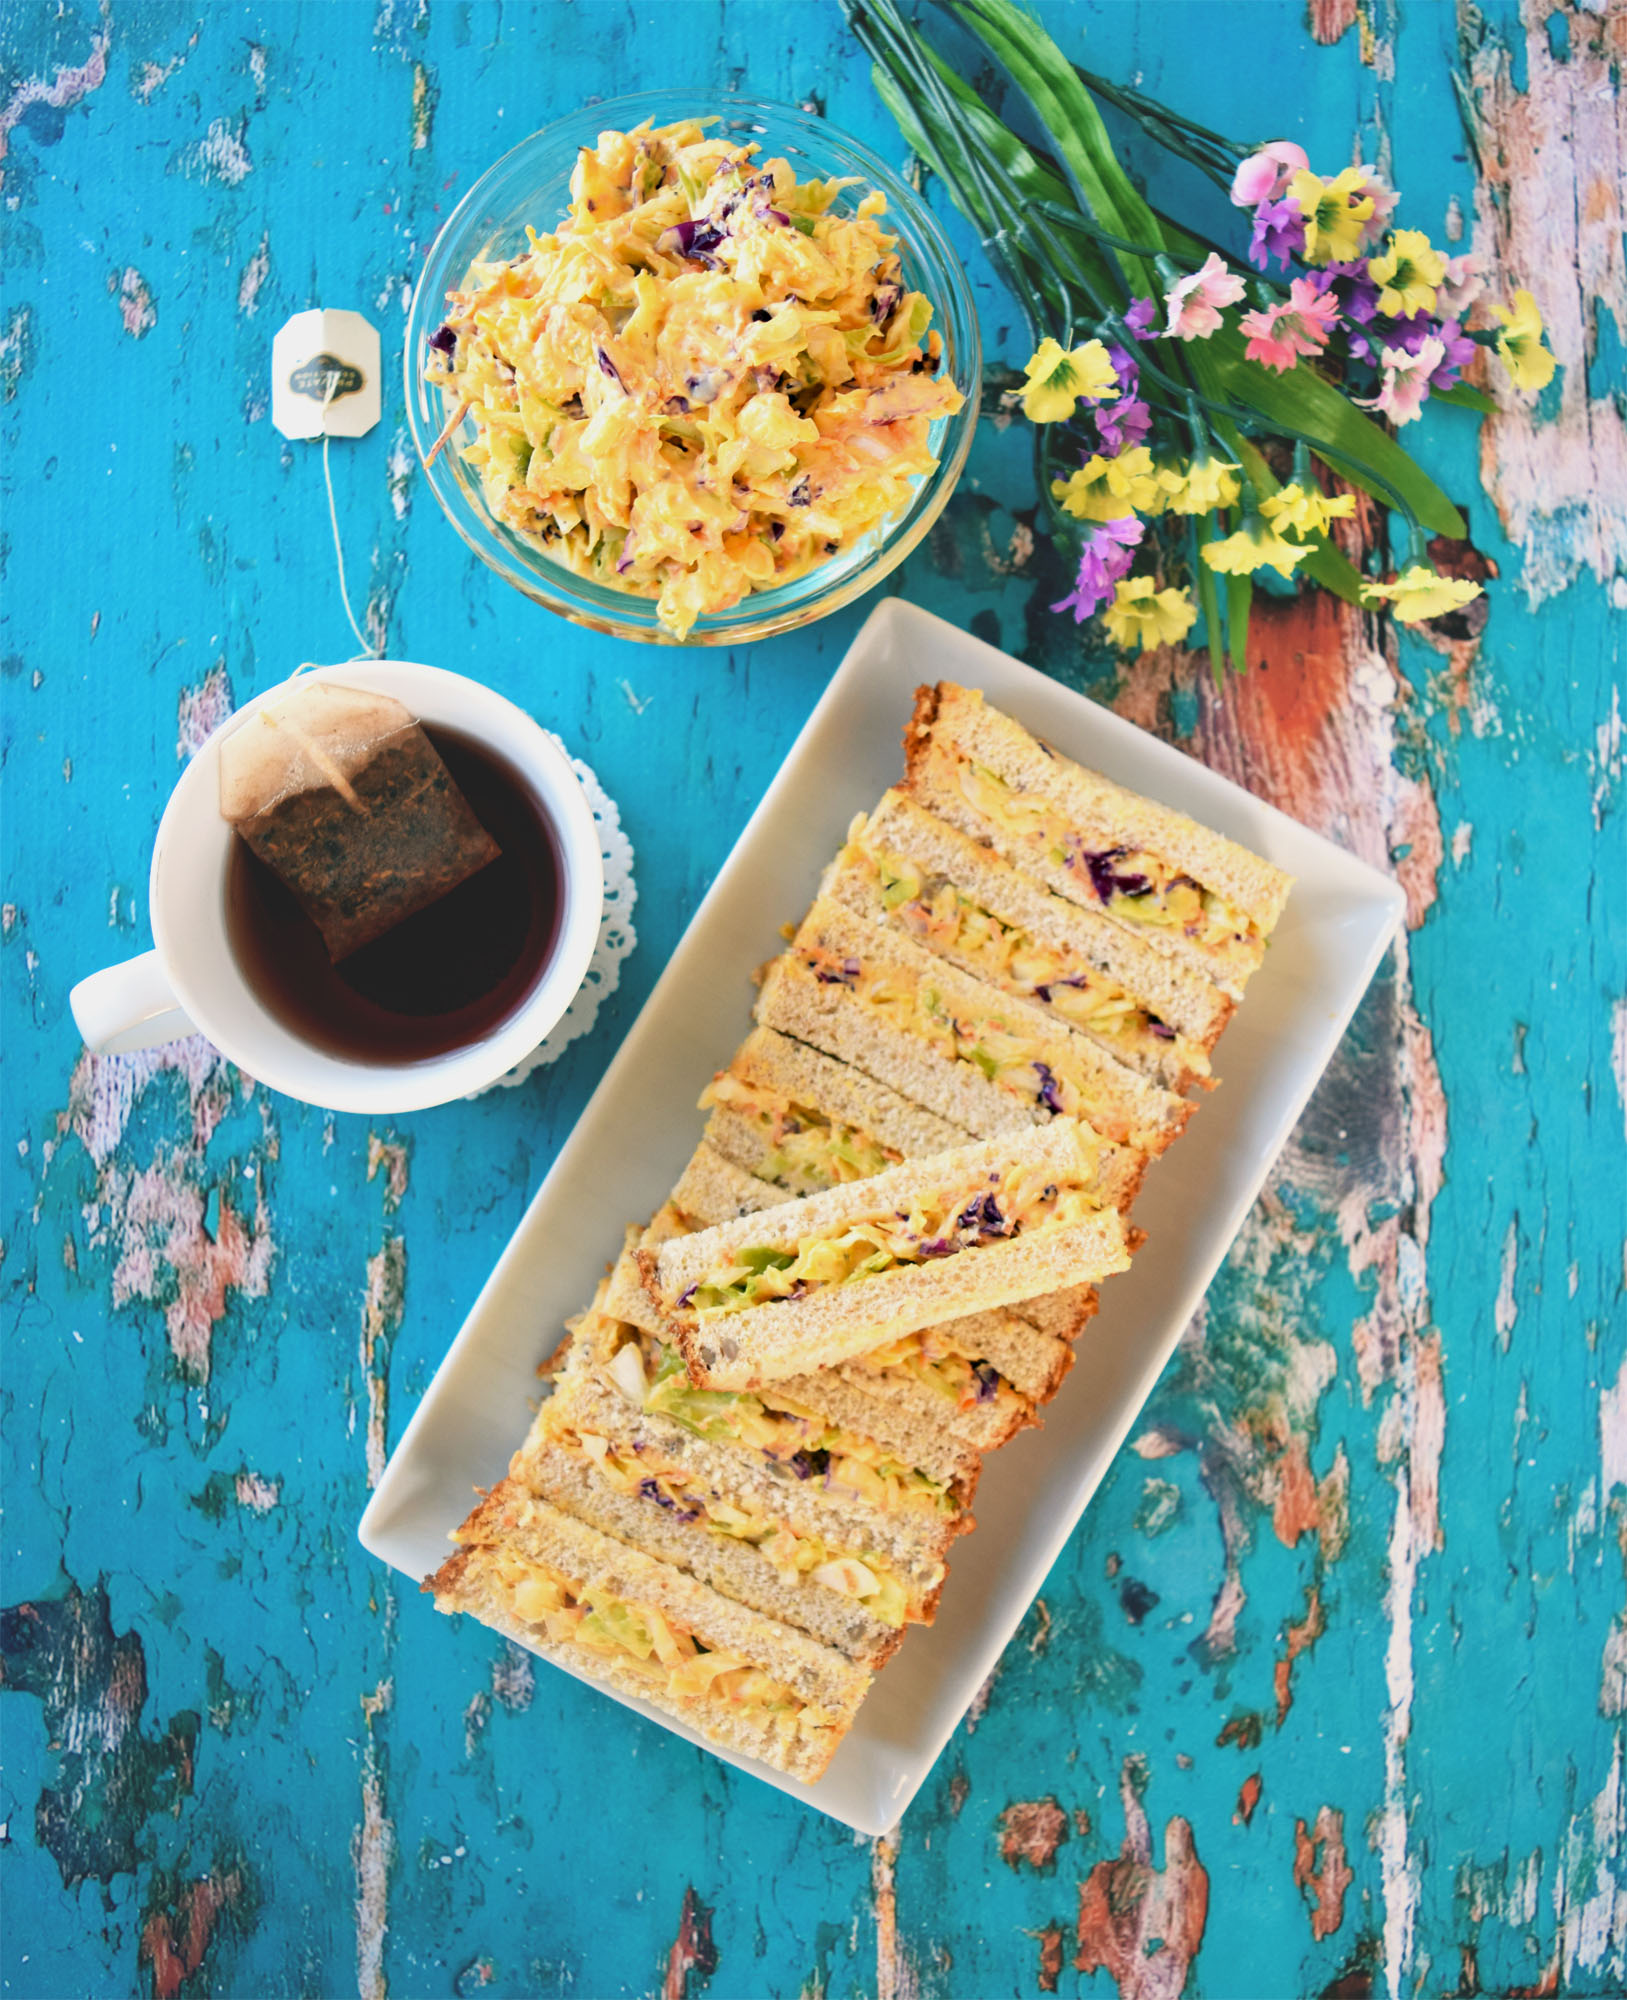 easy vegan coleslaw sandwich bars - perfect party snack